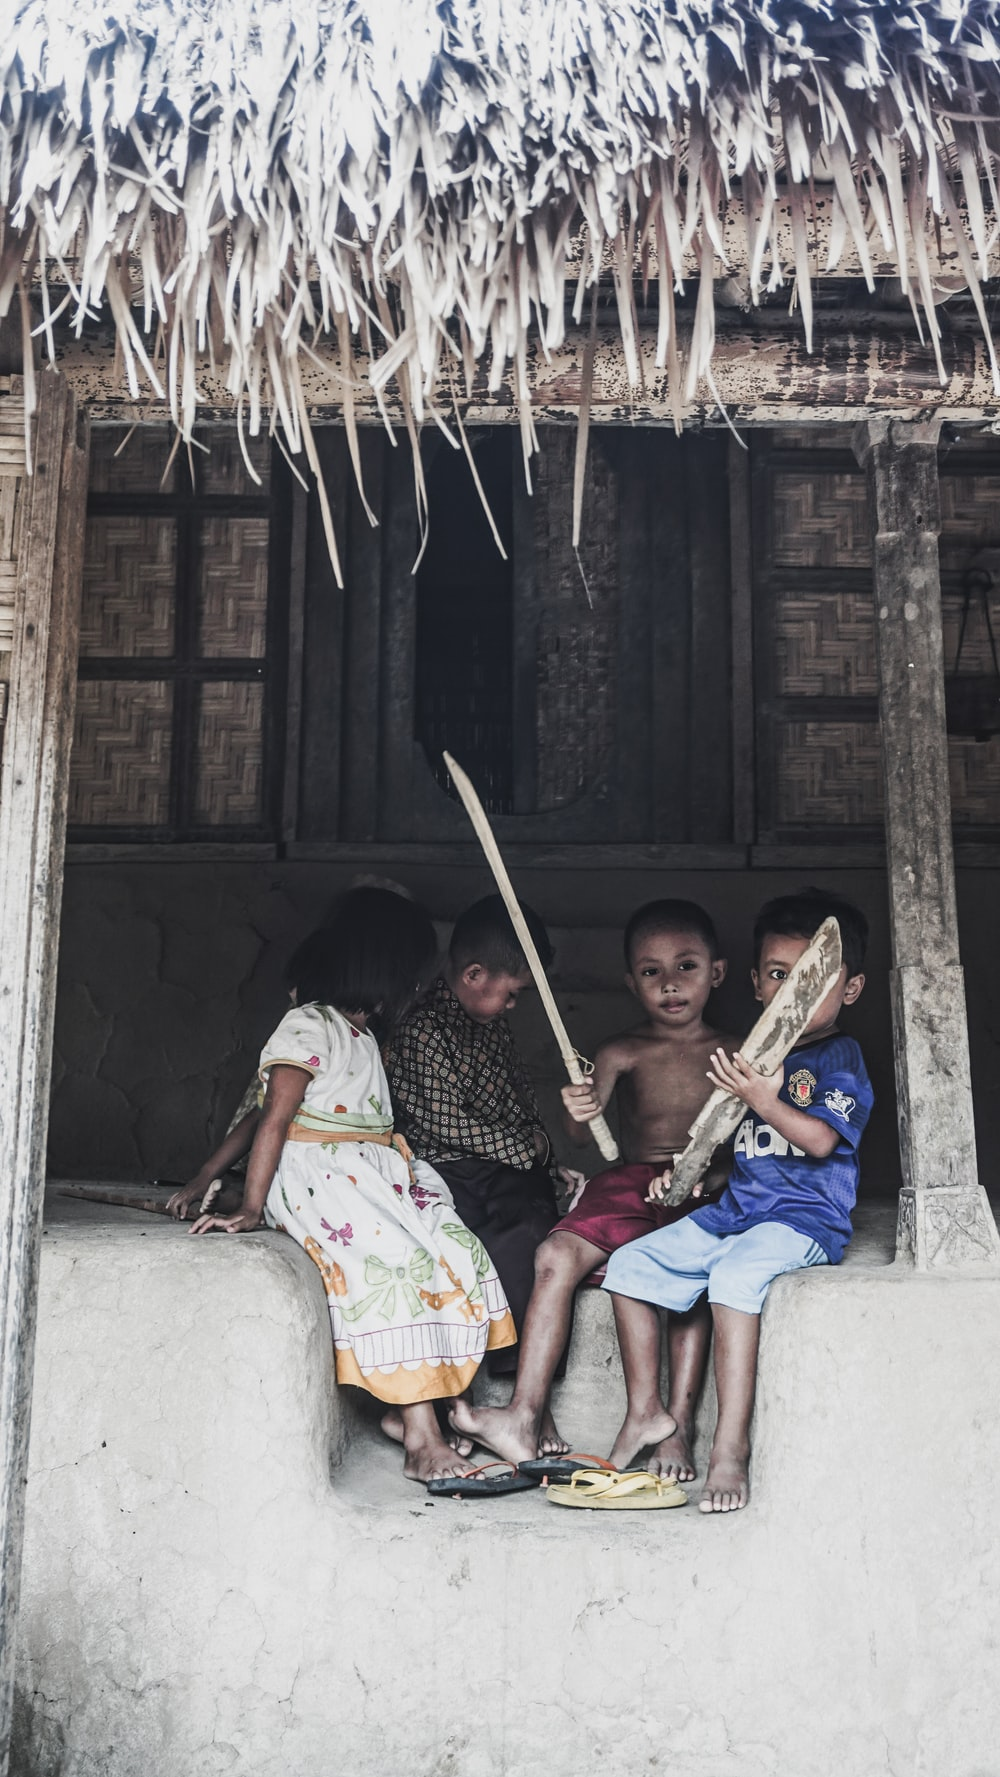 children playing with bamboo rods